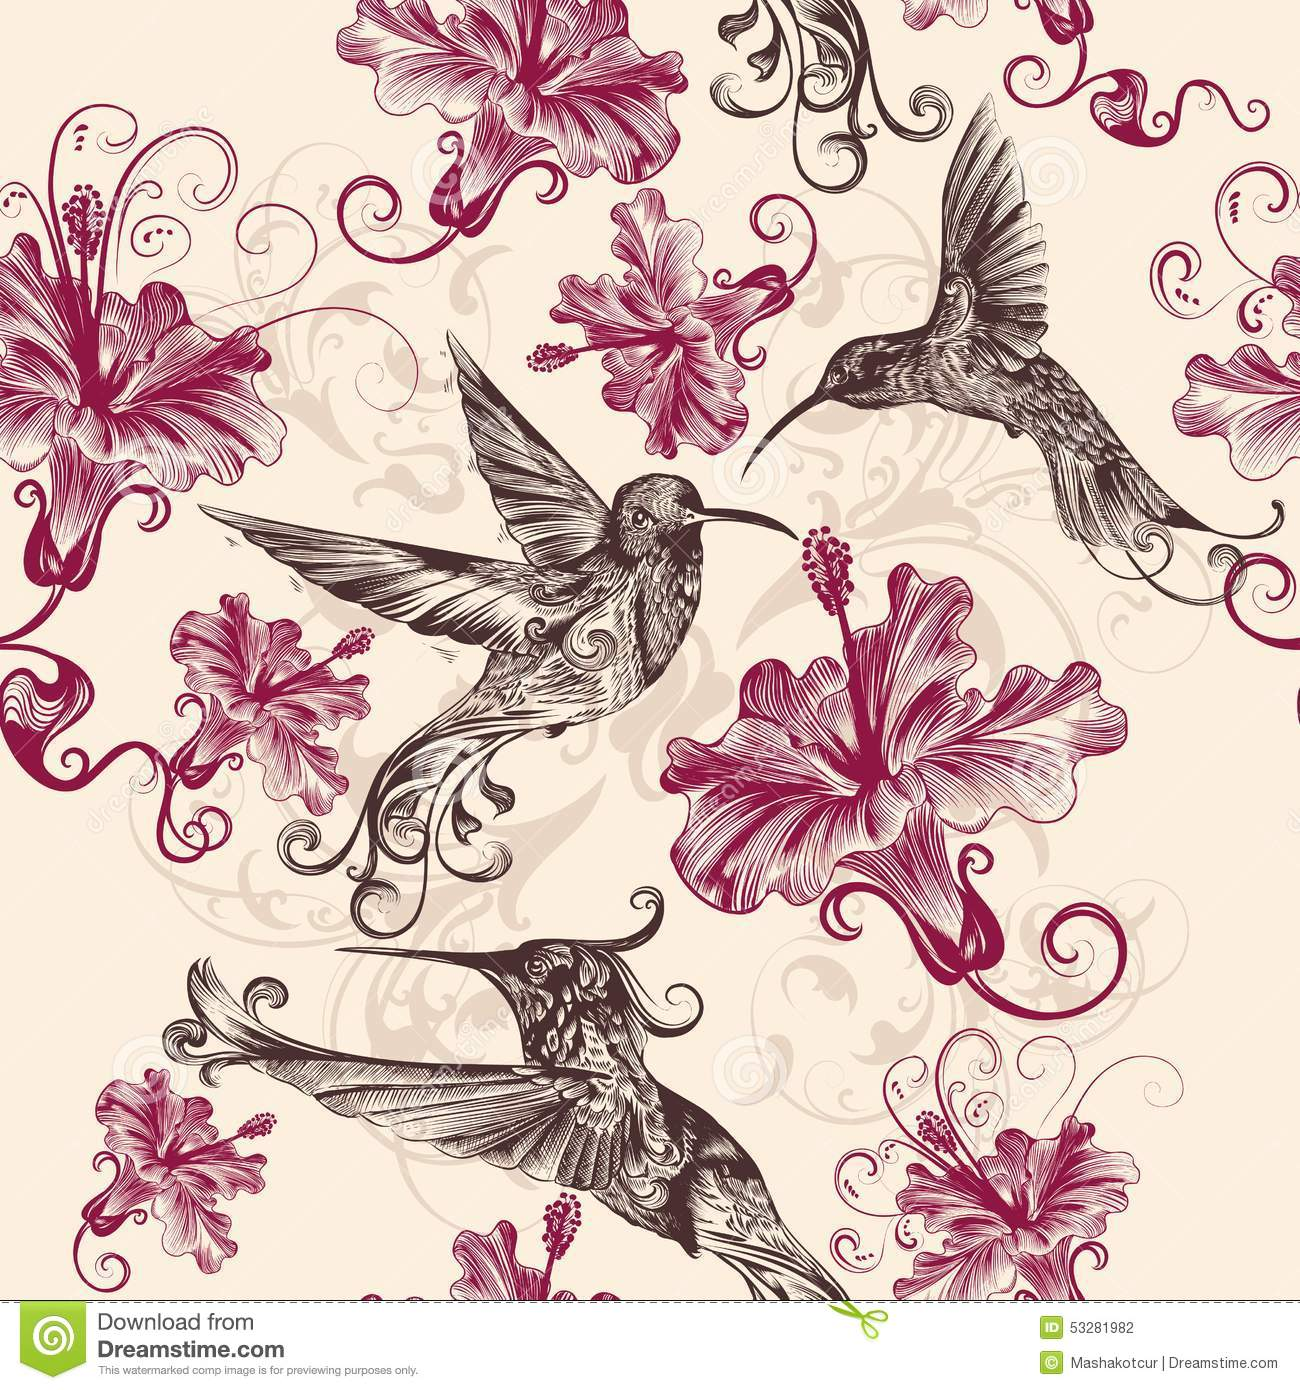 hummingbirds and flowers patterns